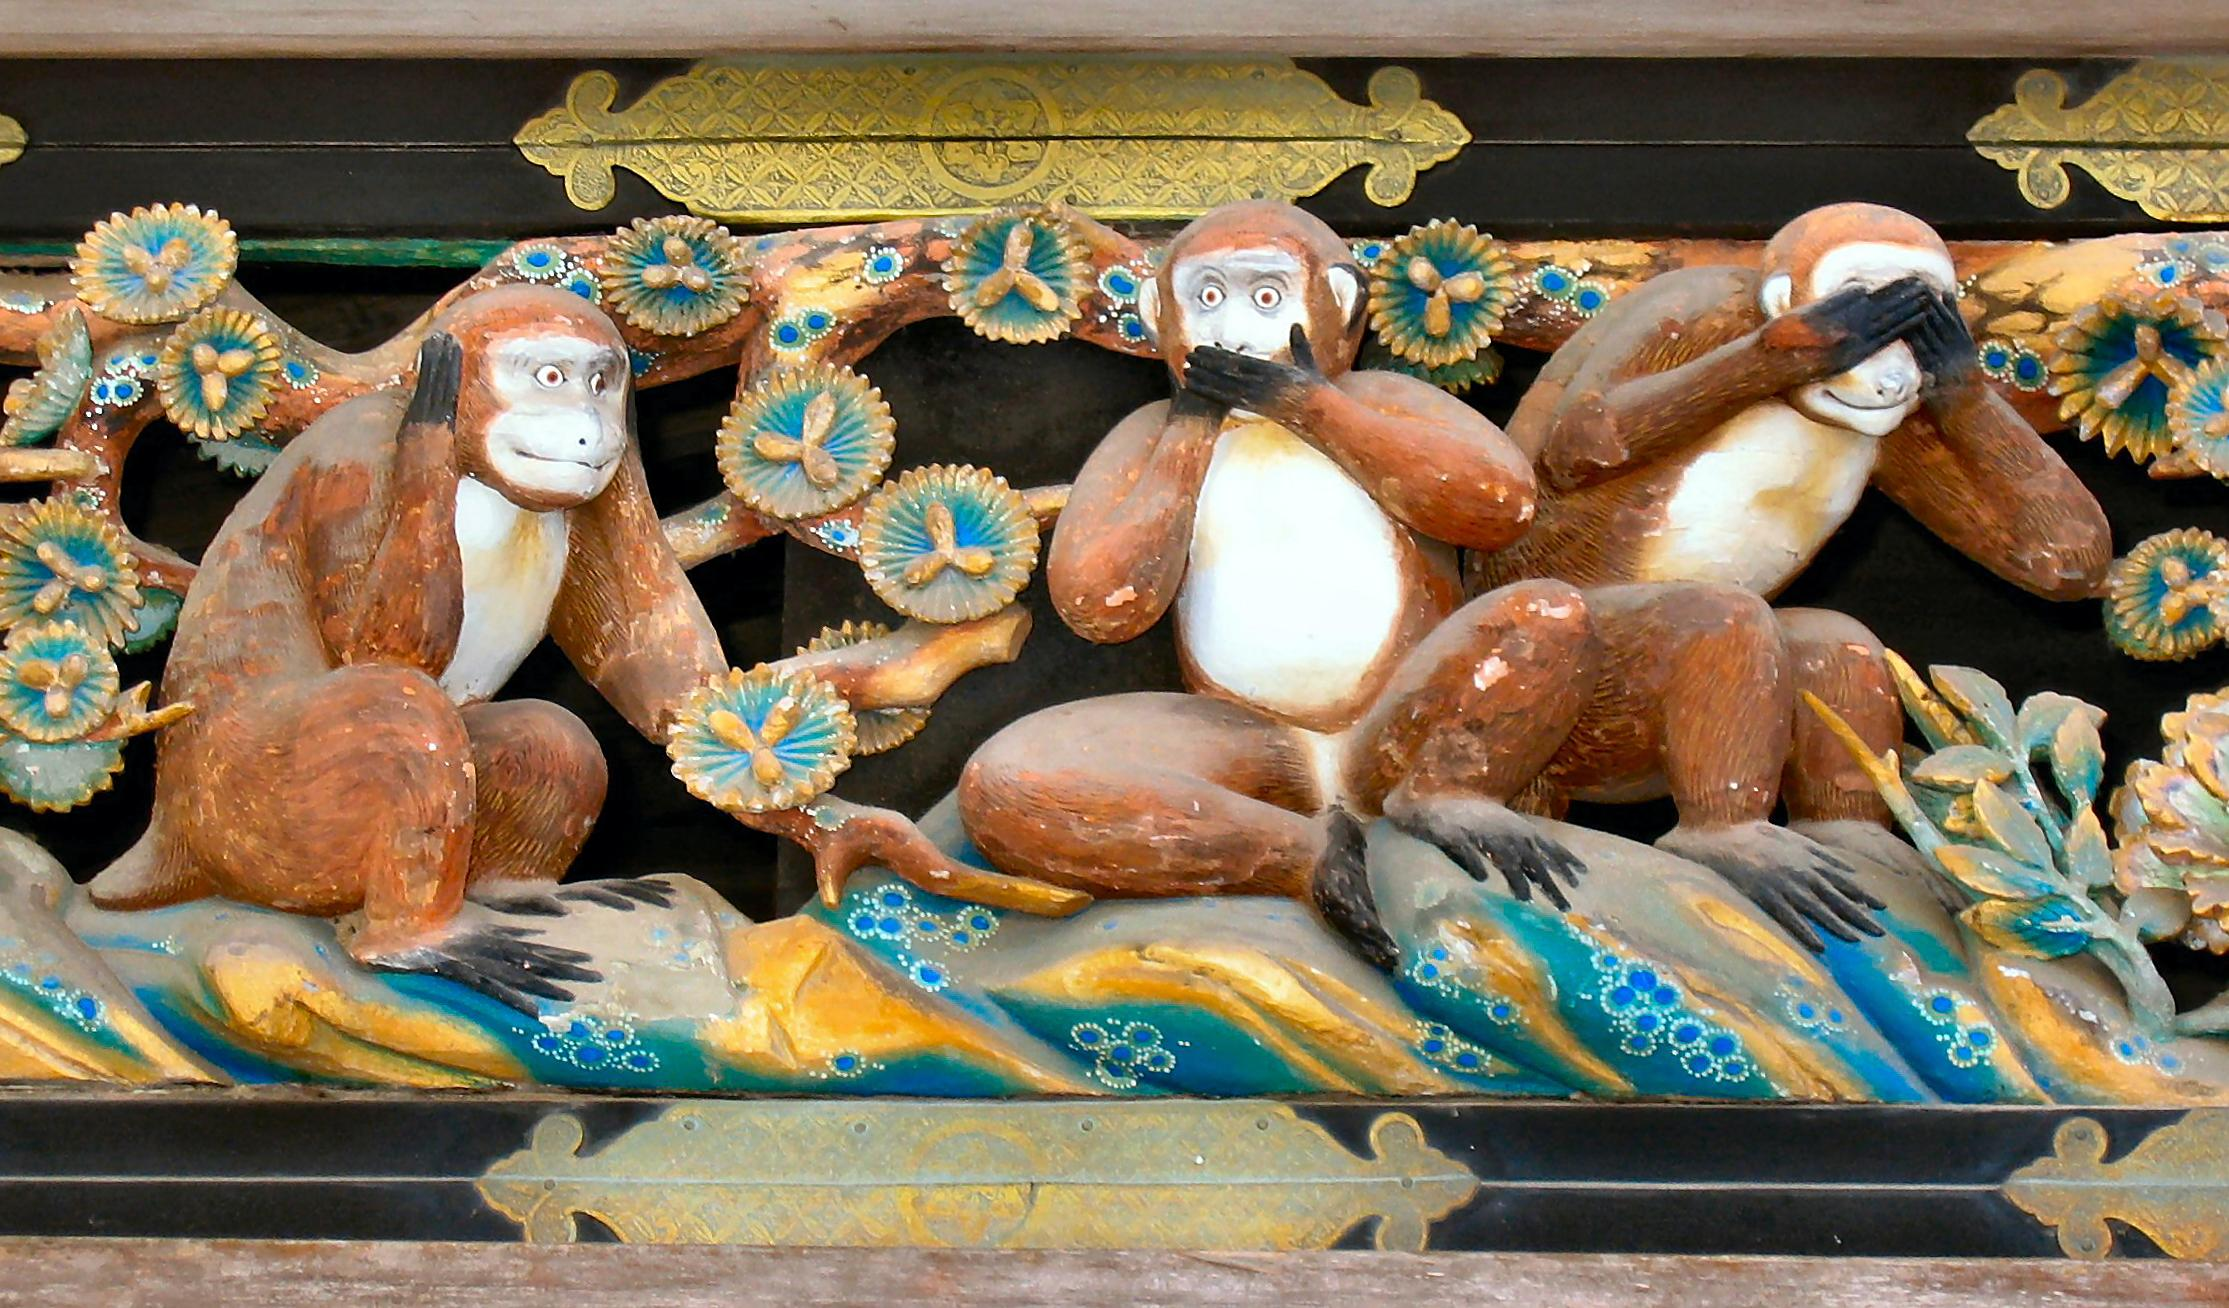 http://upload.wikimedia.org/wikipedia/commons/3/33/Three_Wise_Monkeys%2CTosho-gu_Shrine.JPG